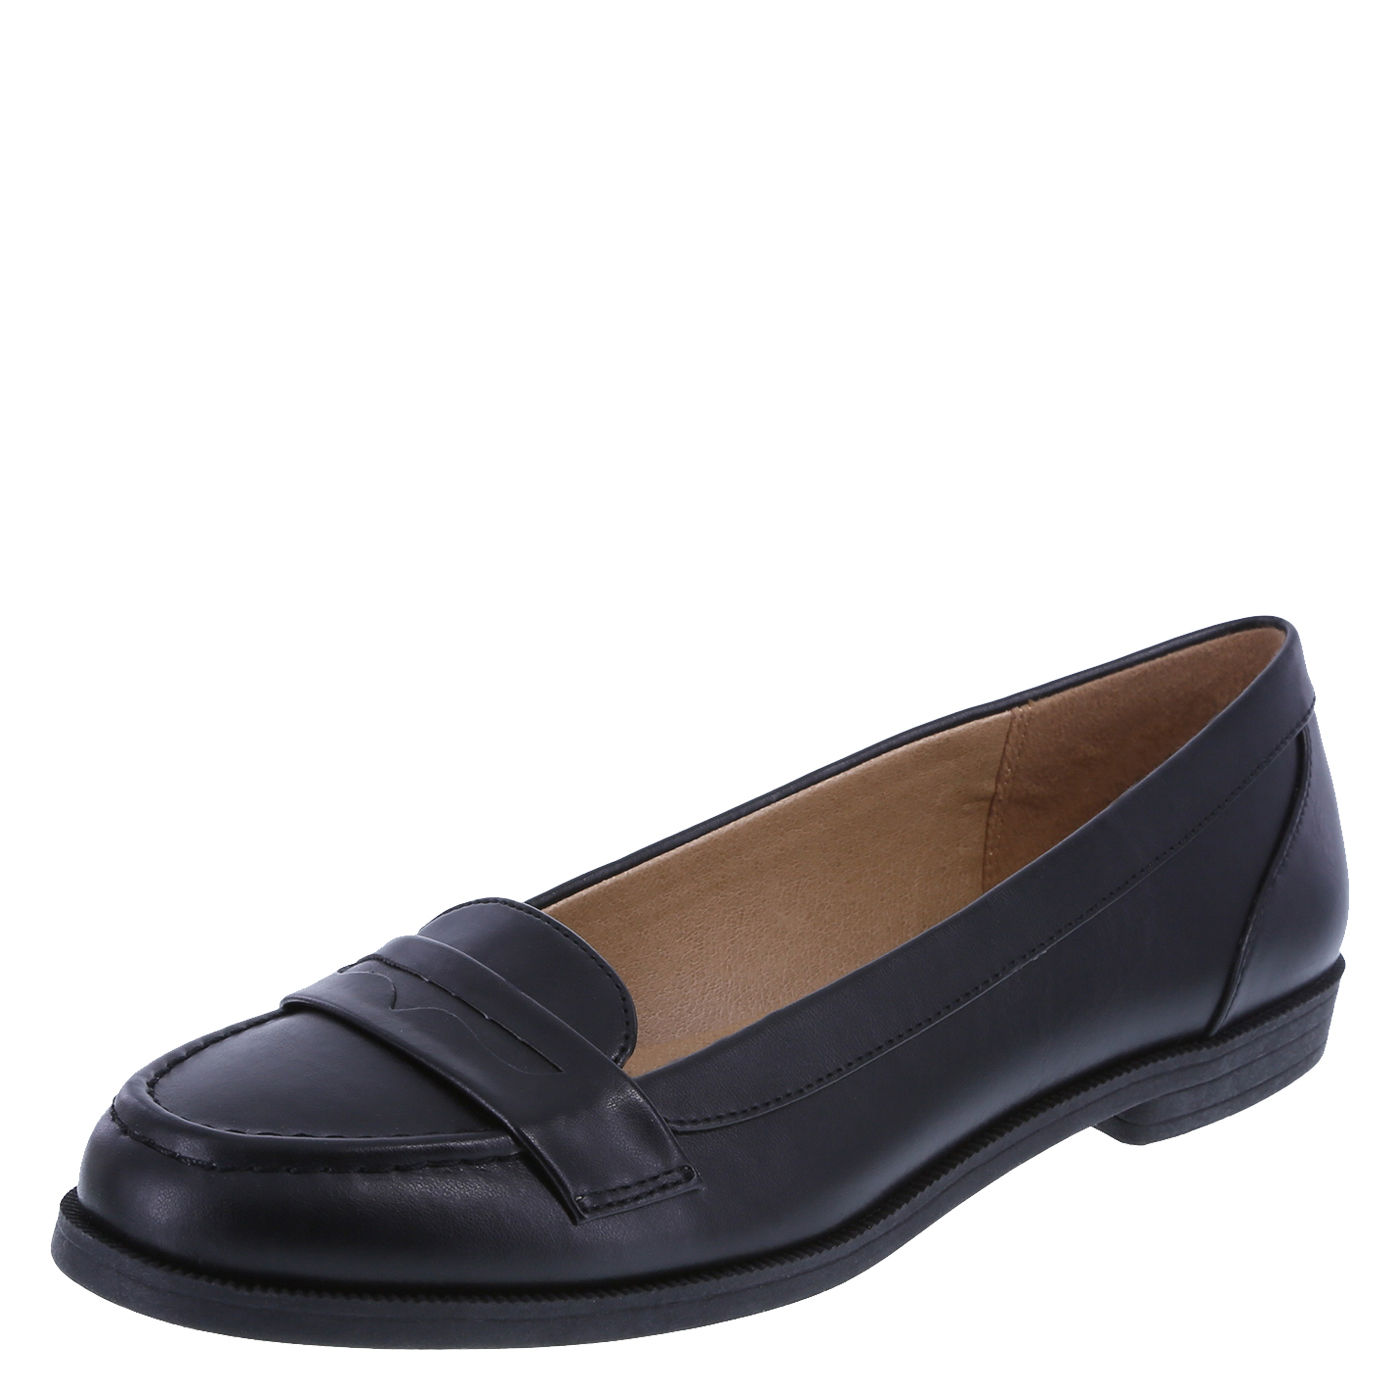 56a9a3b716f Pictures of Loafer Shoes For Women - www.kidskunst.info